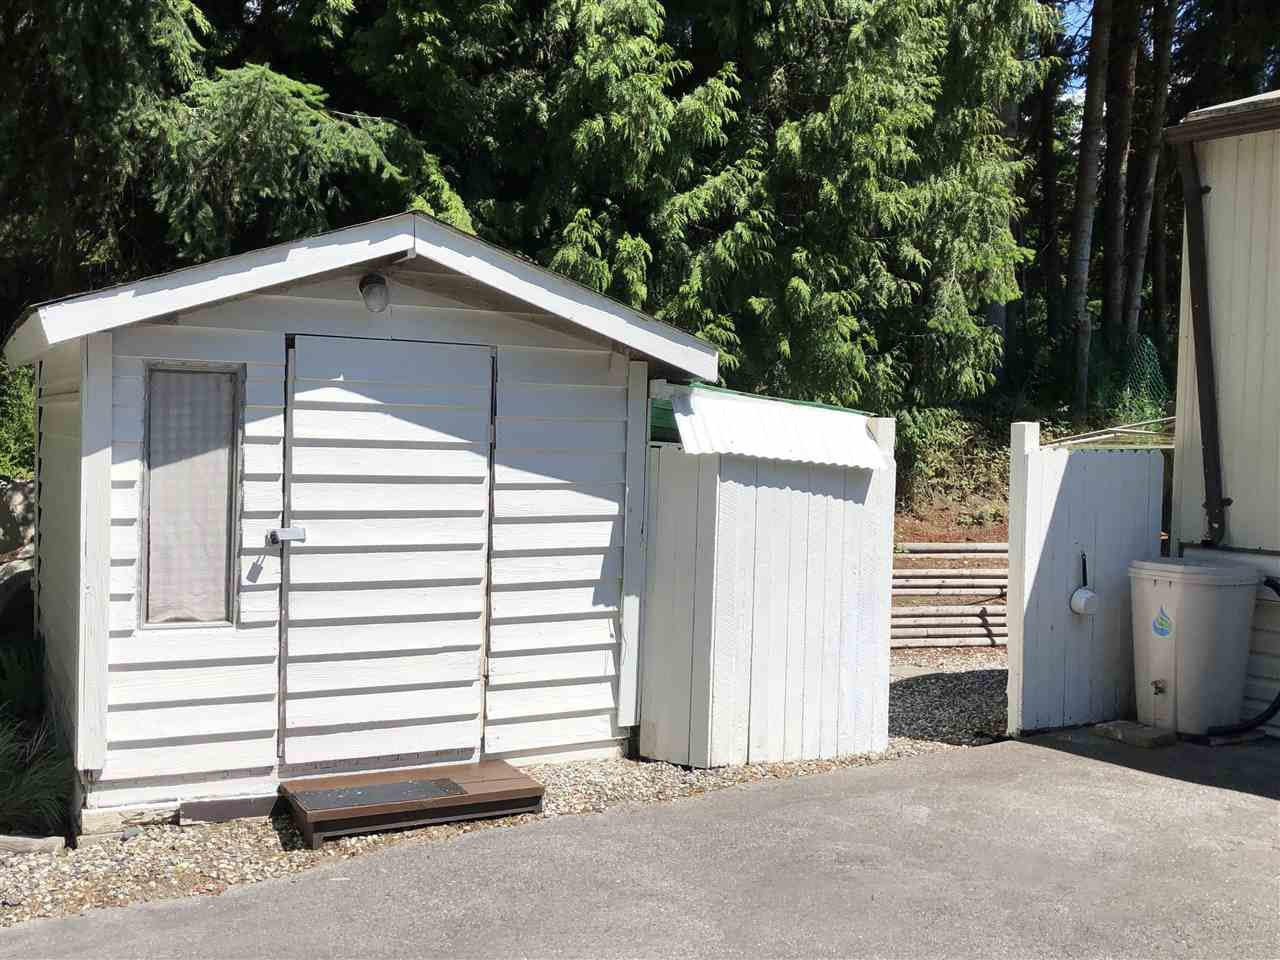 "Photo 3: Photos: 45 4116 BROWNING Road in Sechelt: Sechelt District Manufactured Home for sale in ""ROCKLAND WYND"" (Sunshine Coast)  : MLS®# R2472545"